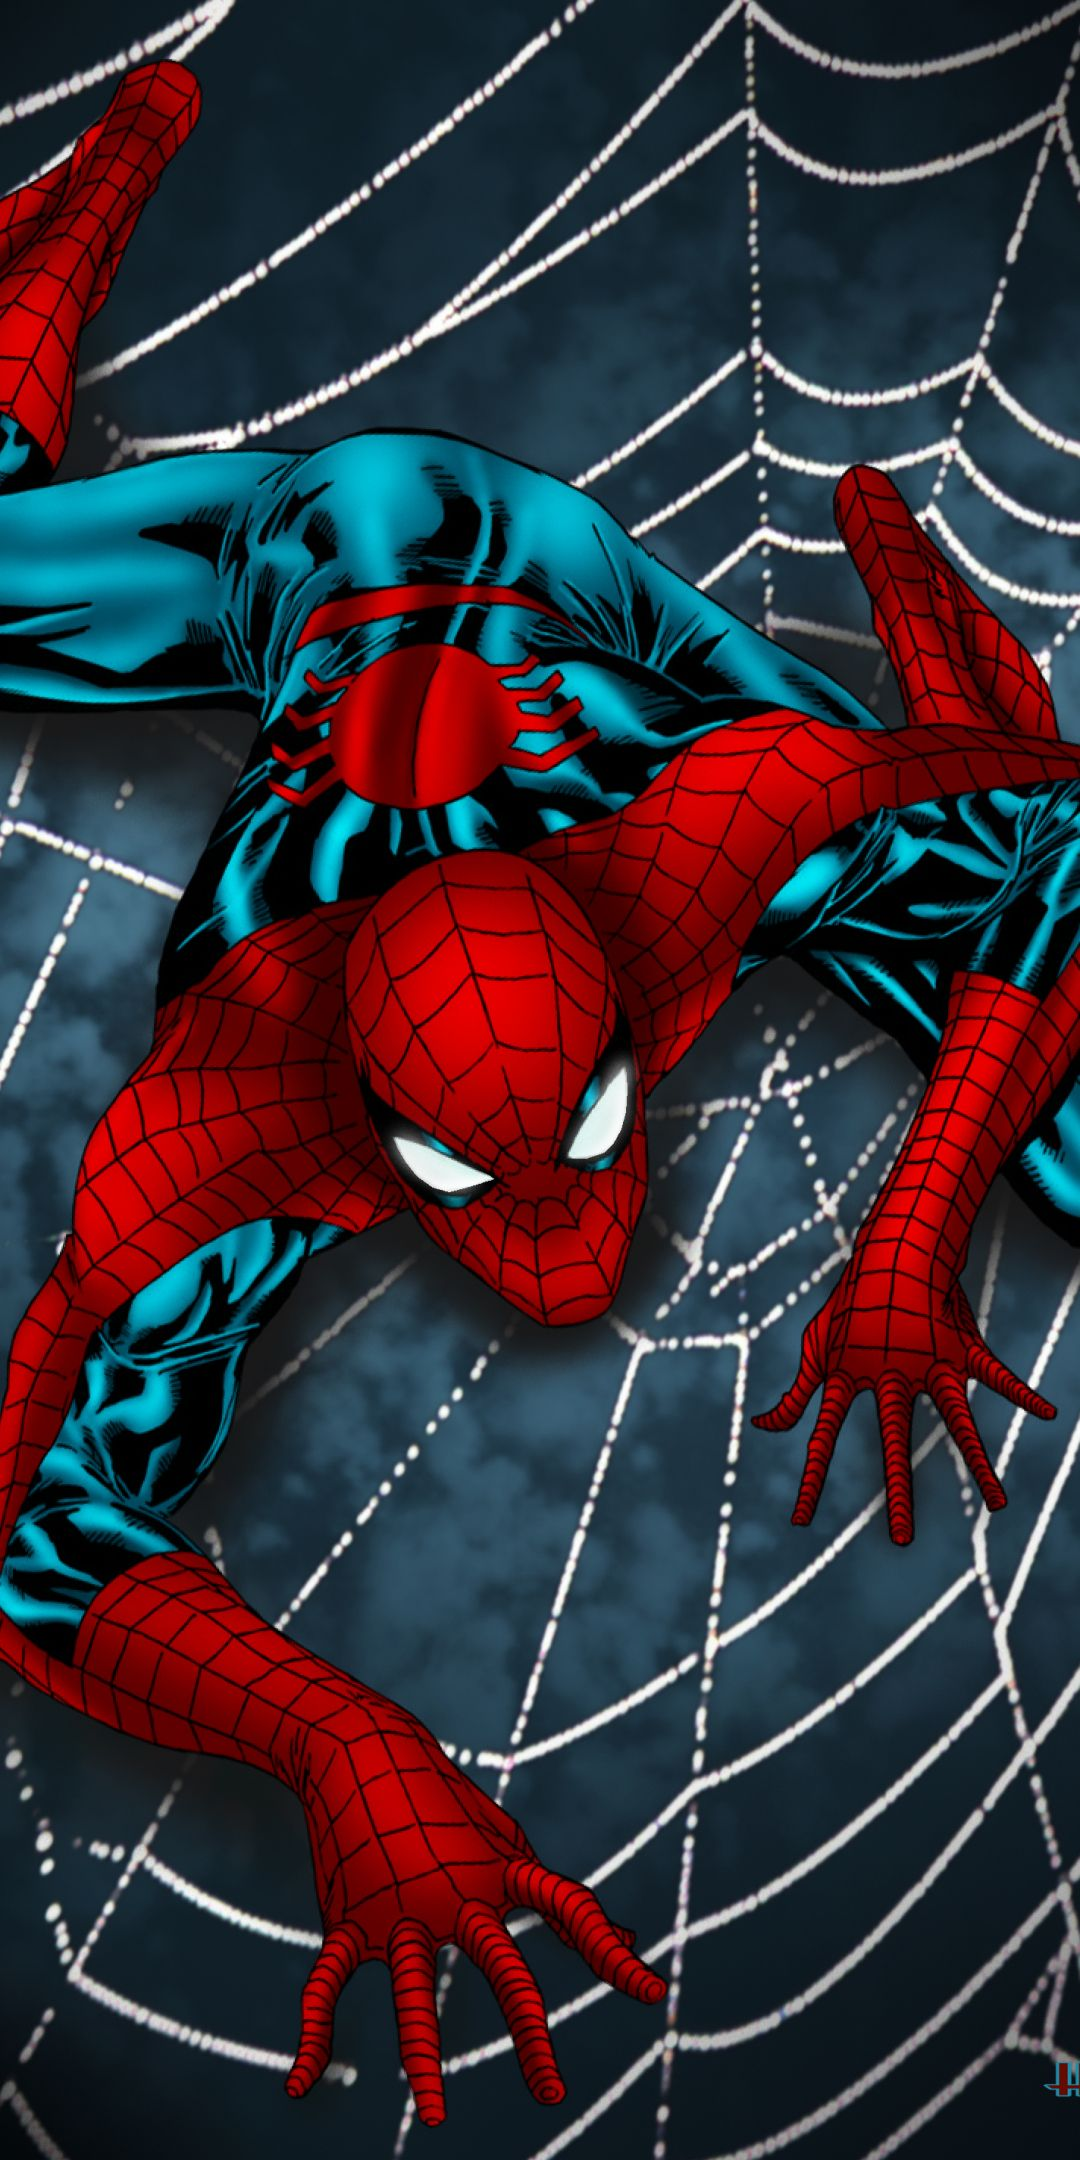 Spider Man Mobile Wallpaper In 2020 Spiderman Comic Spiderman Pictures Spiderman